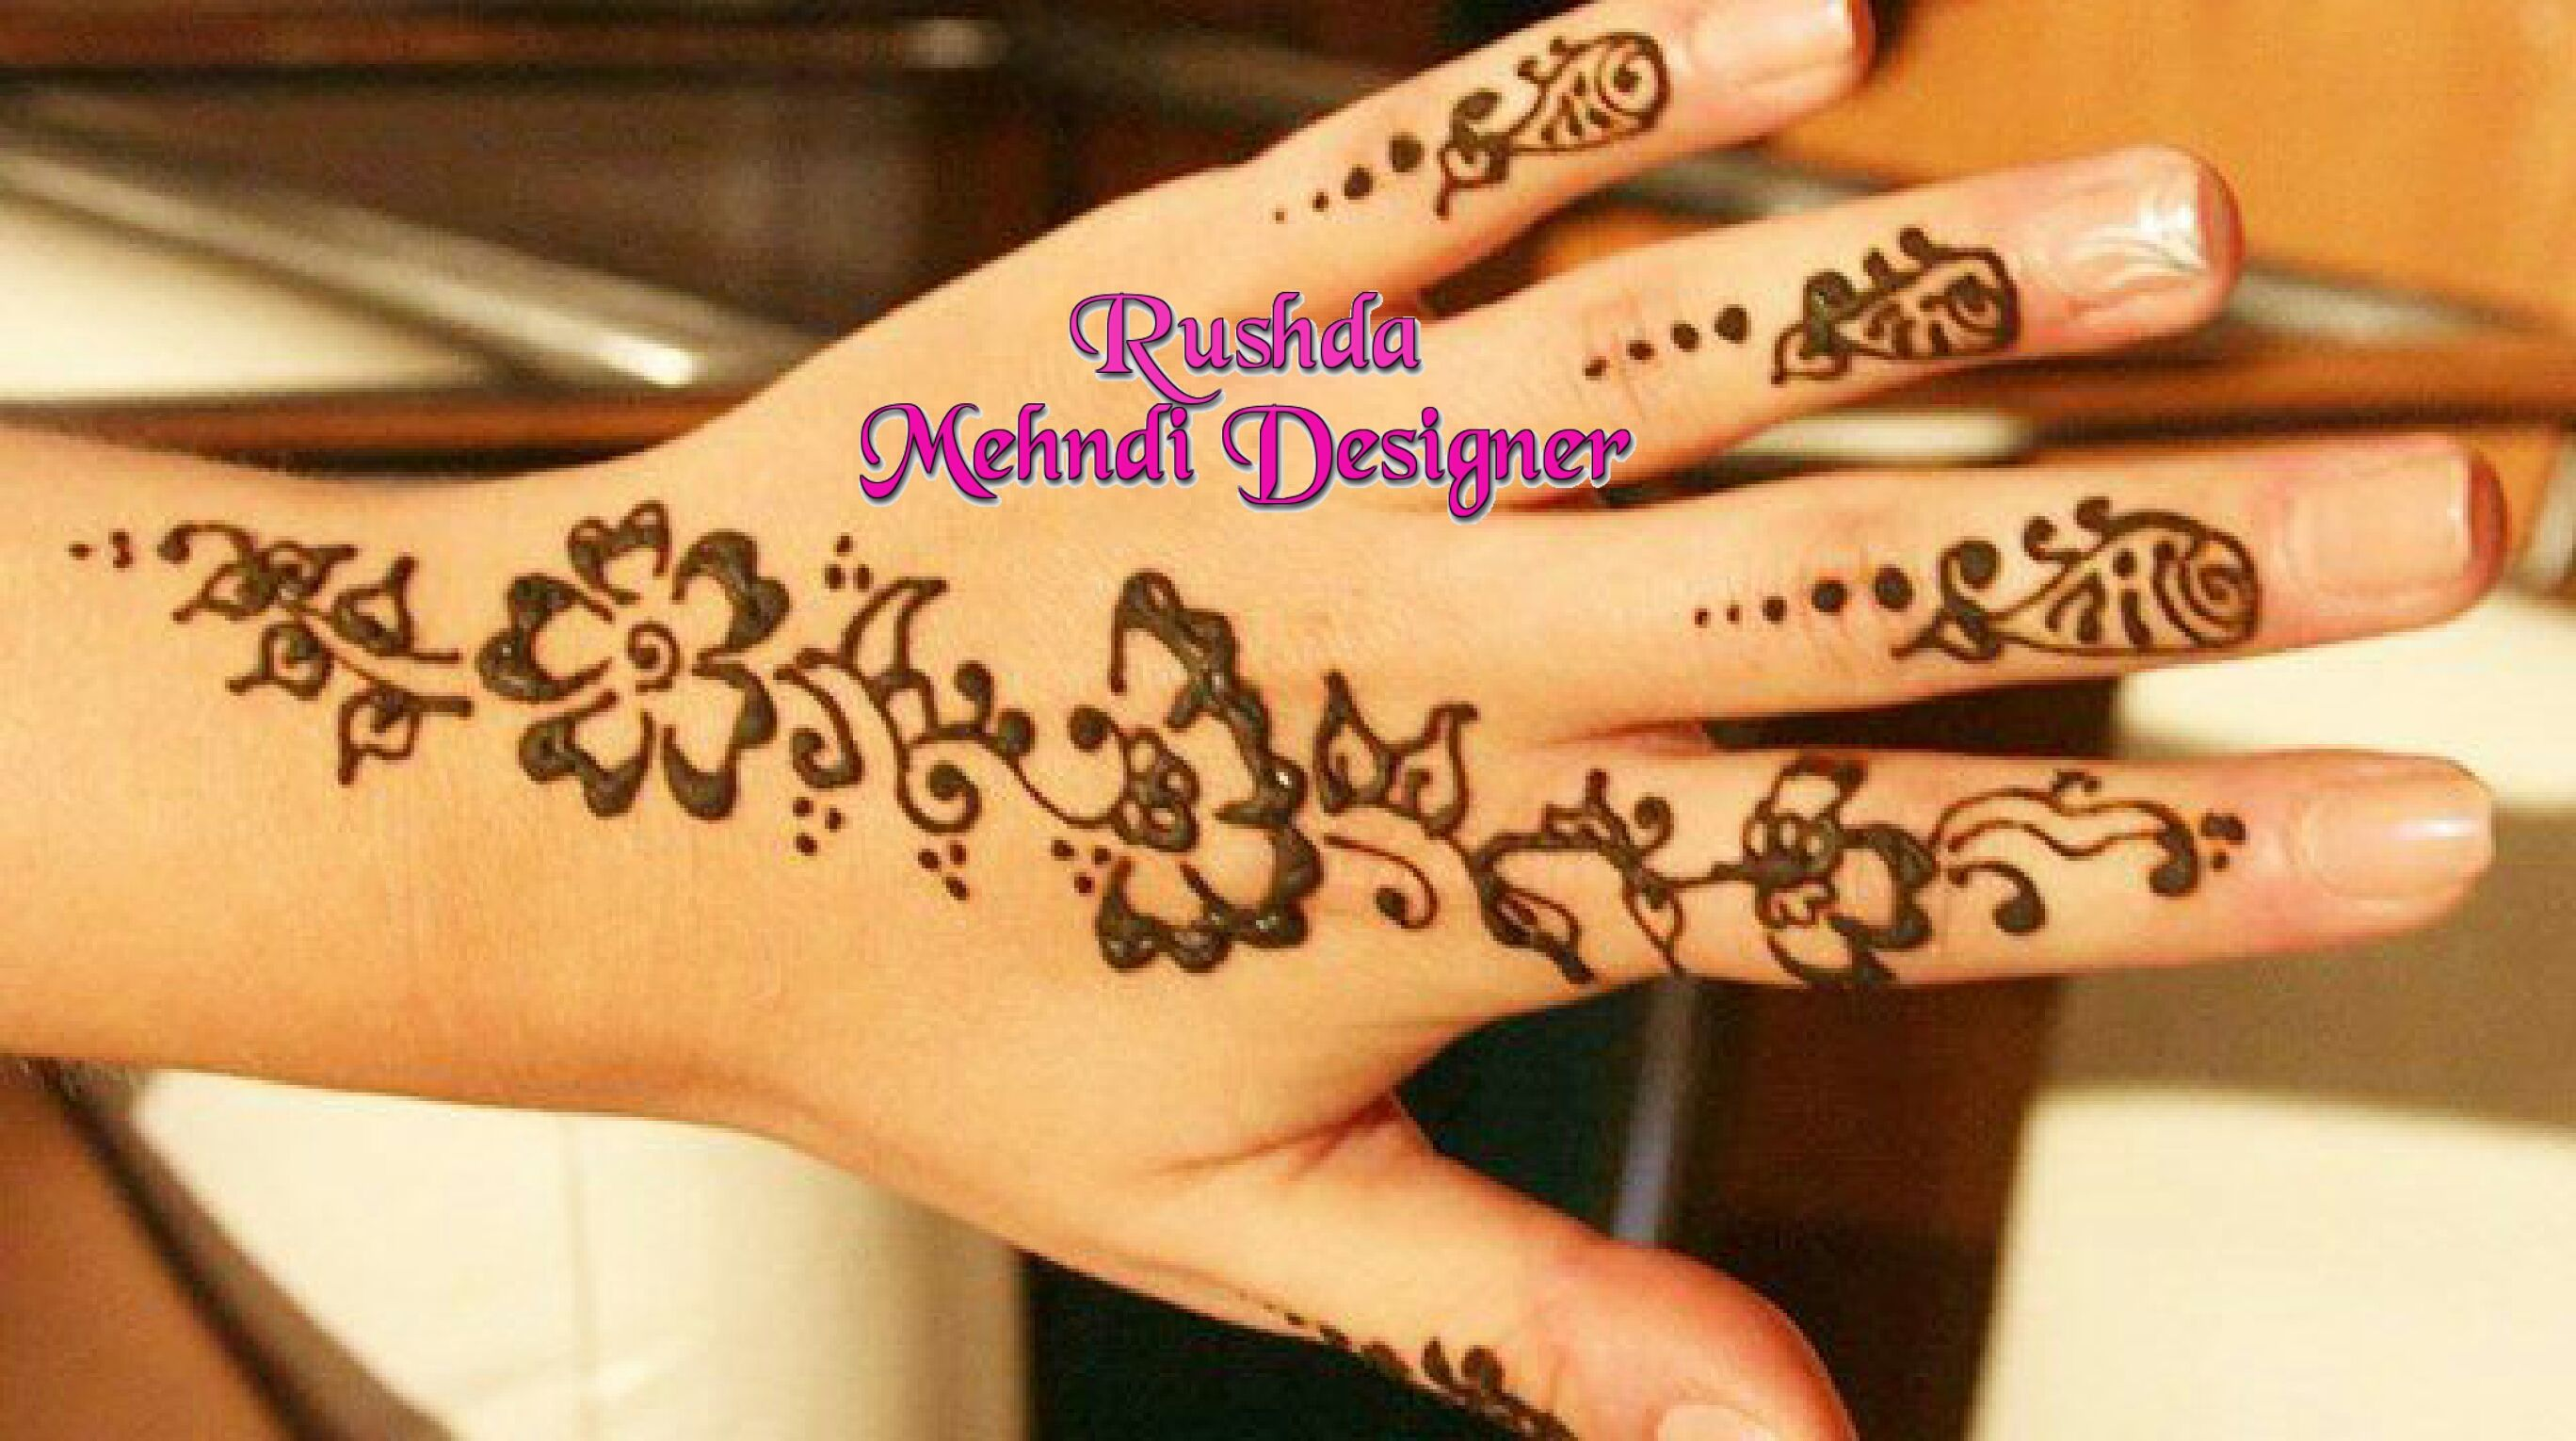 to RUSHDA MEHNDI DESIGNER by Farhat a Professional